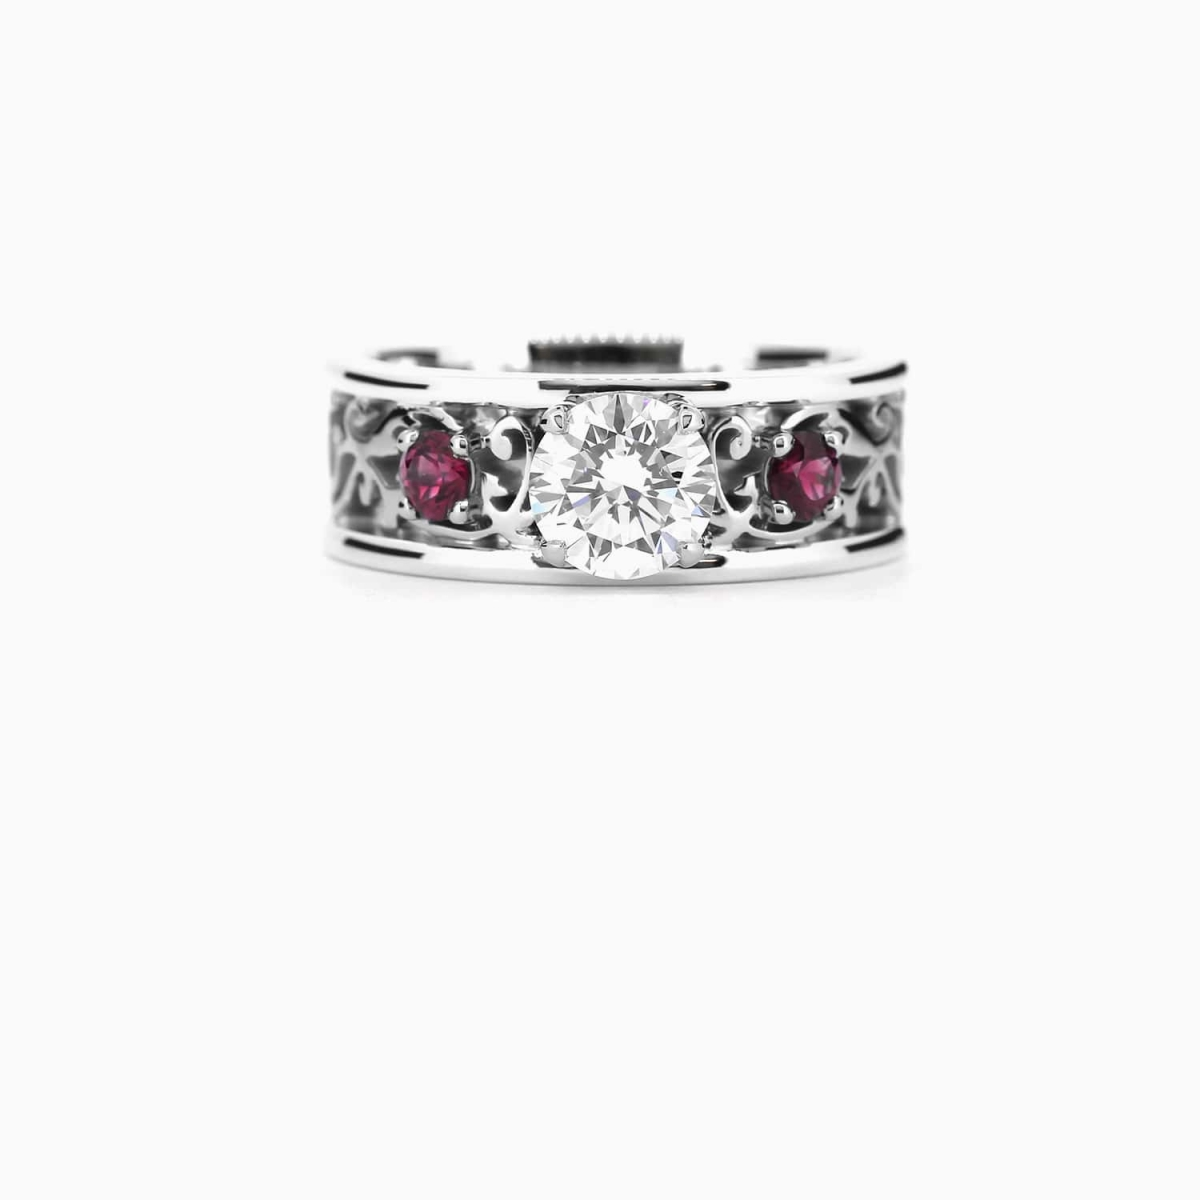 Royal Wide Filigree Ring With Gia Certificated Diamond And Ruby